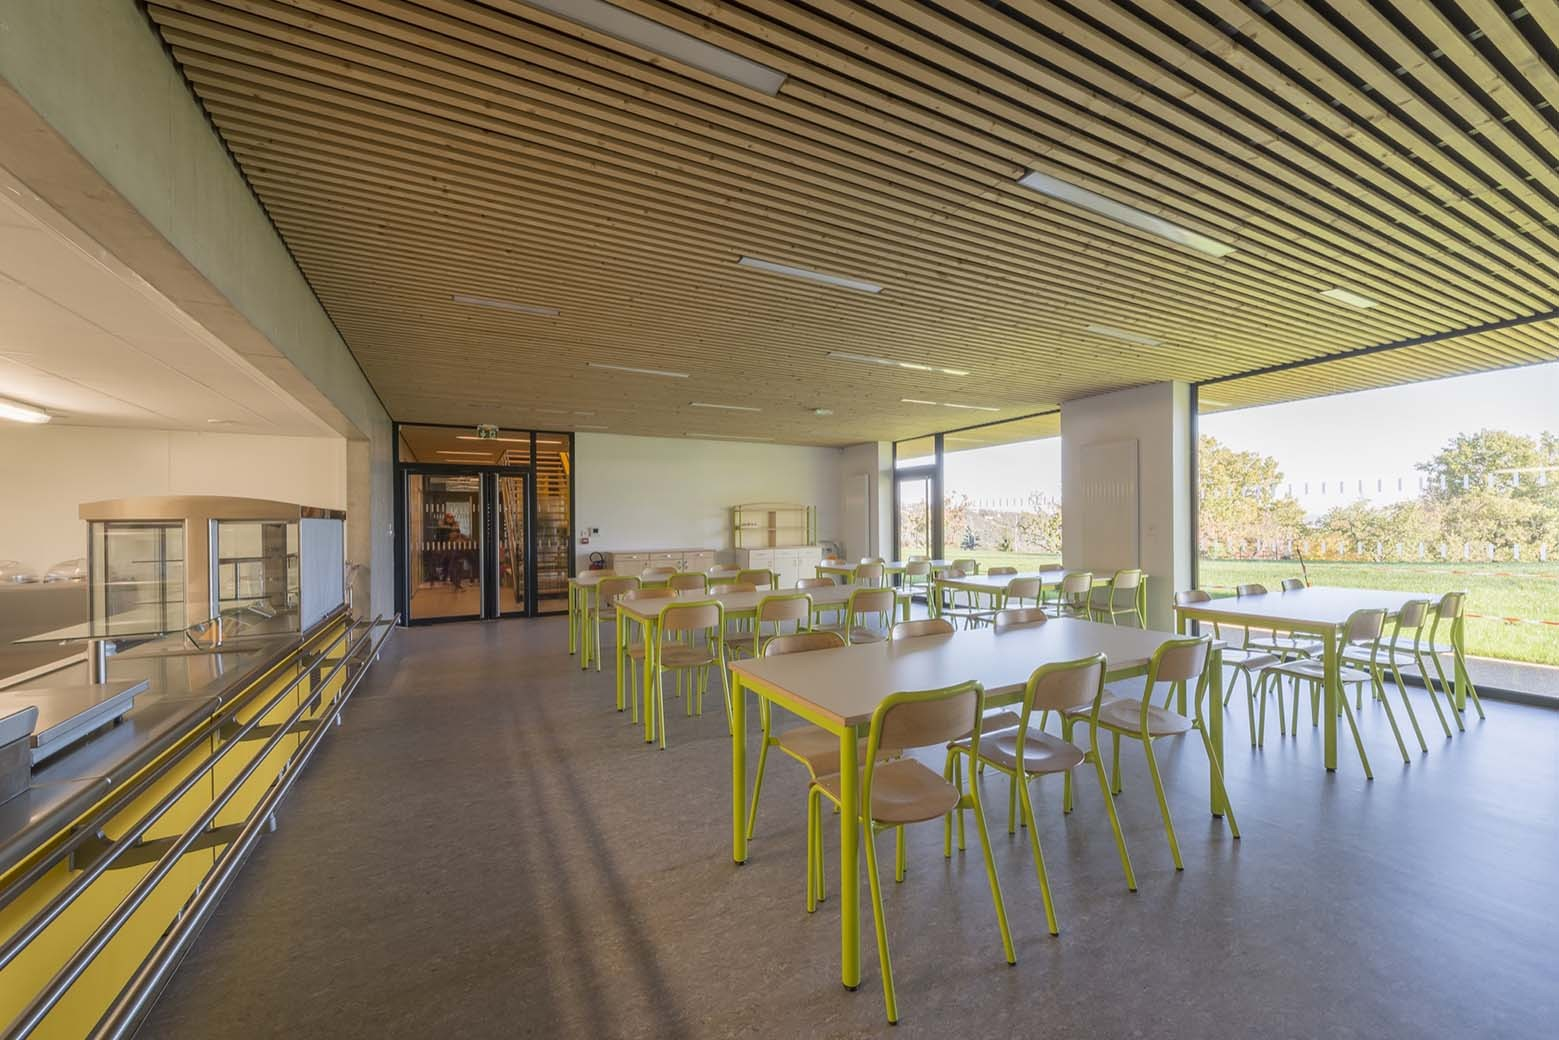 Gallery of Non-residential Day Camp Centre in Givors ...